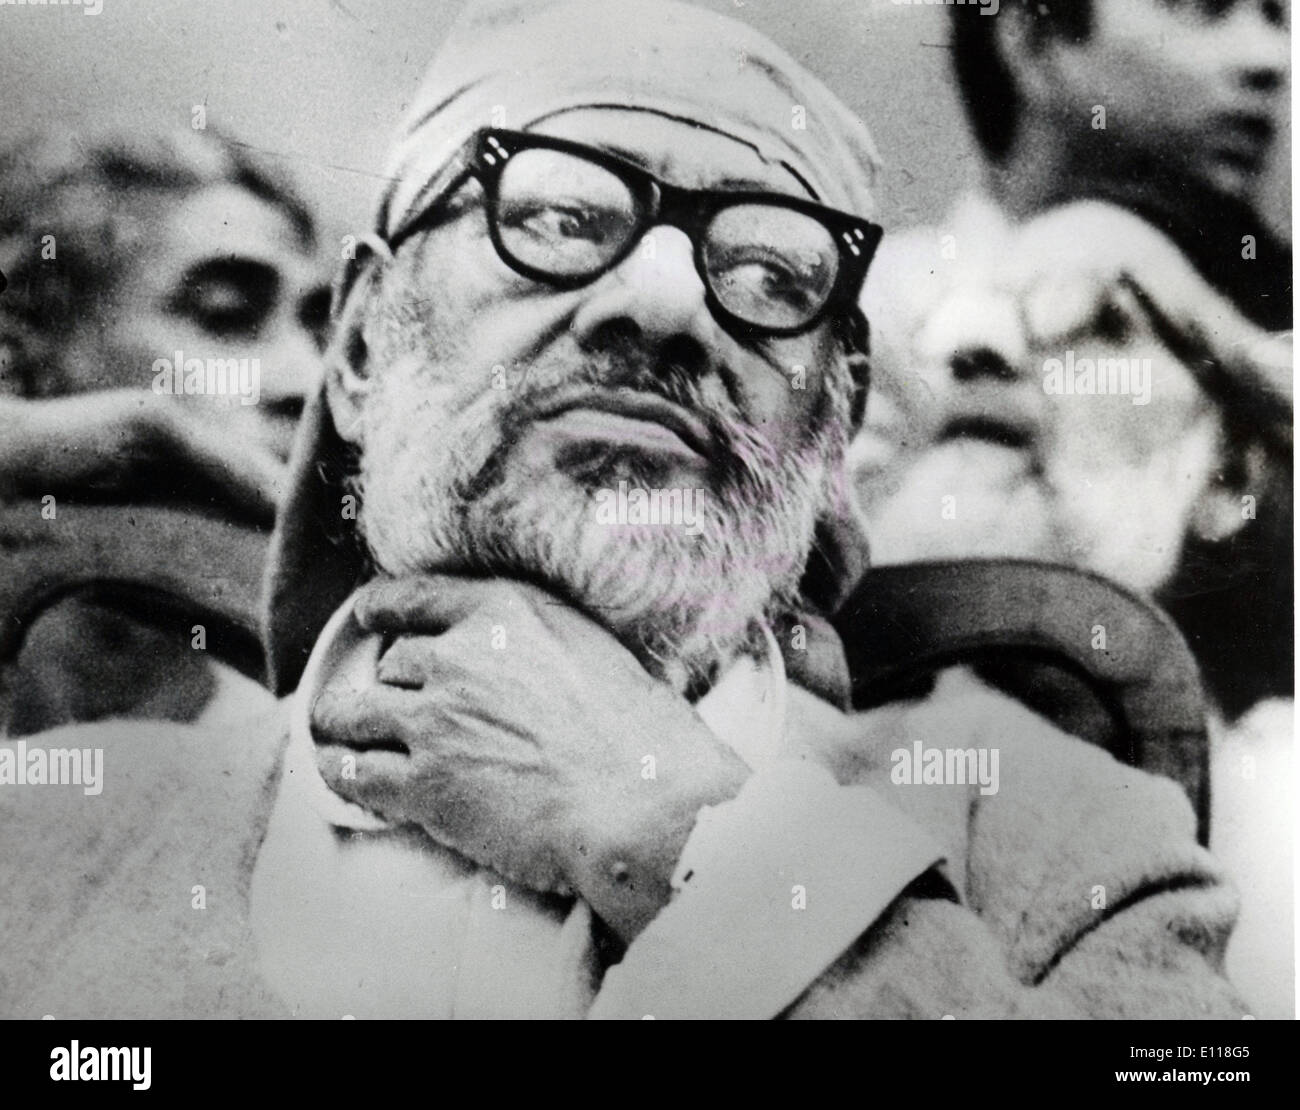 Mr. RAJ NARAIN listens to a speaker at a rally. Exact date unknown. - Stock Image